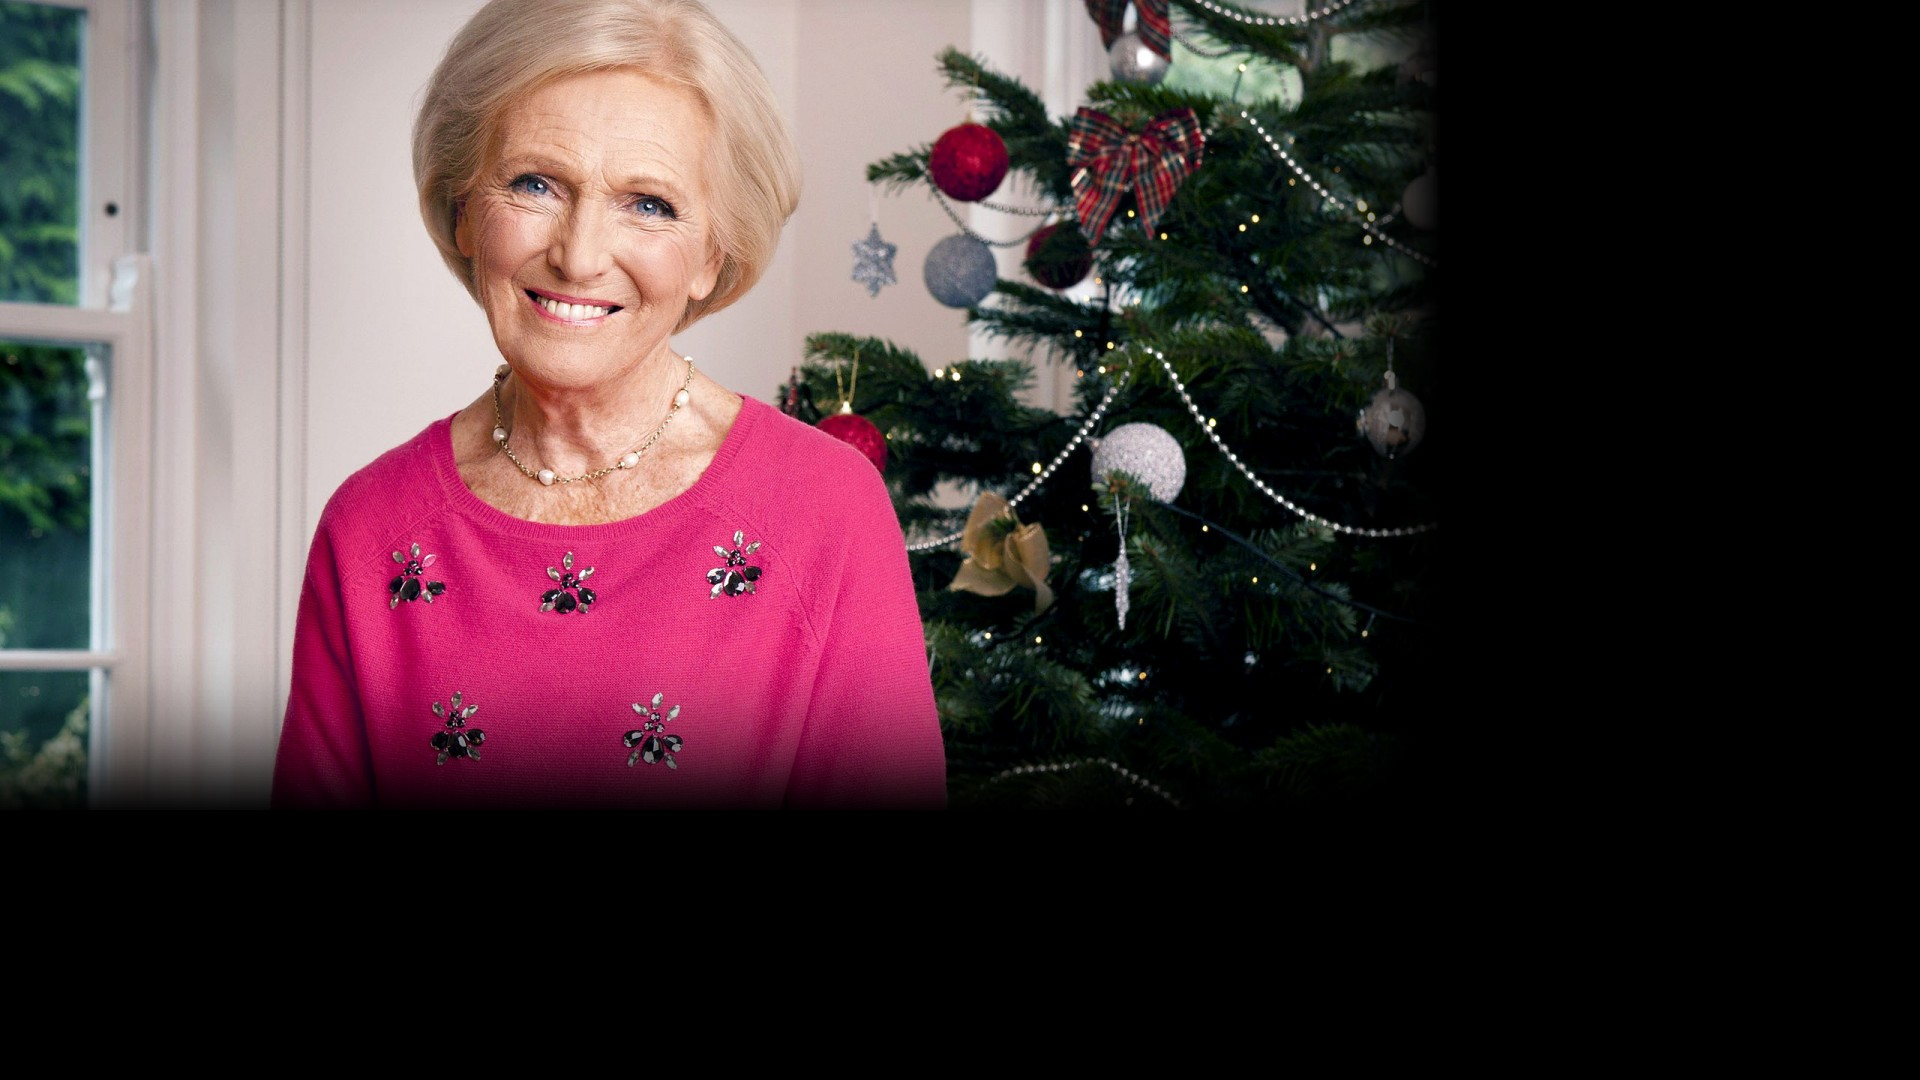 Mary Berry Christmas Cake With Grace Fruits